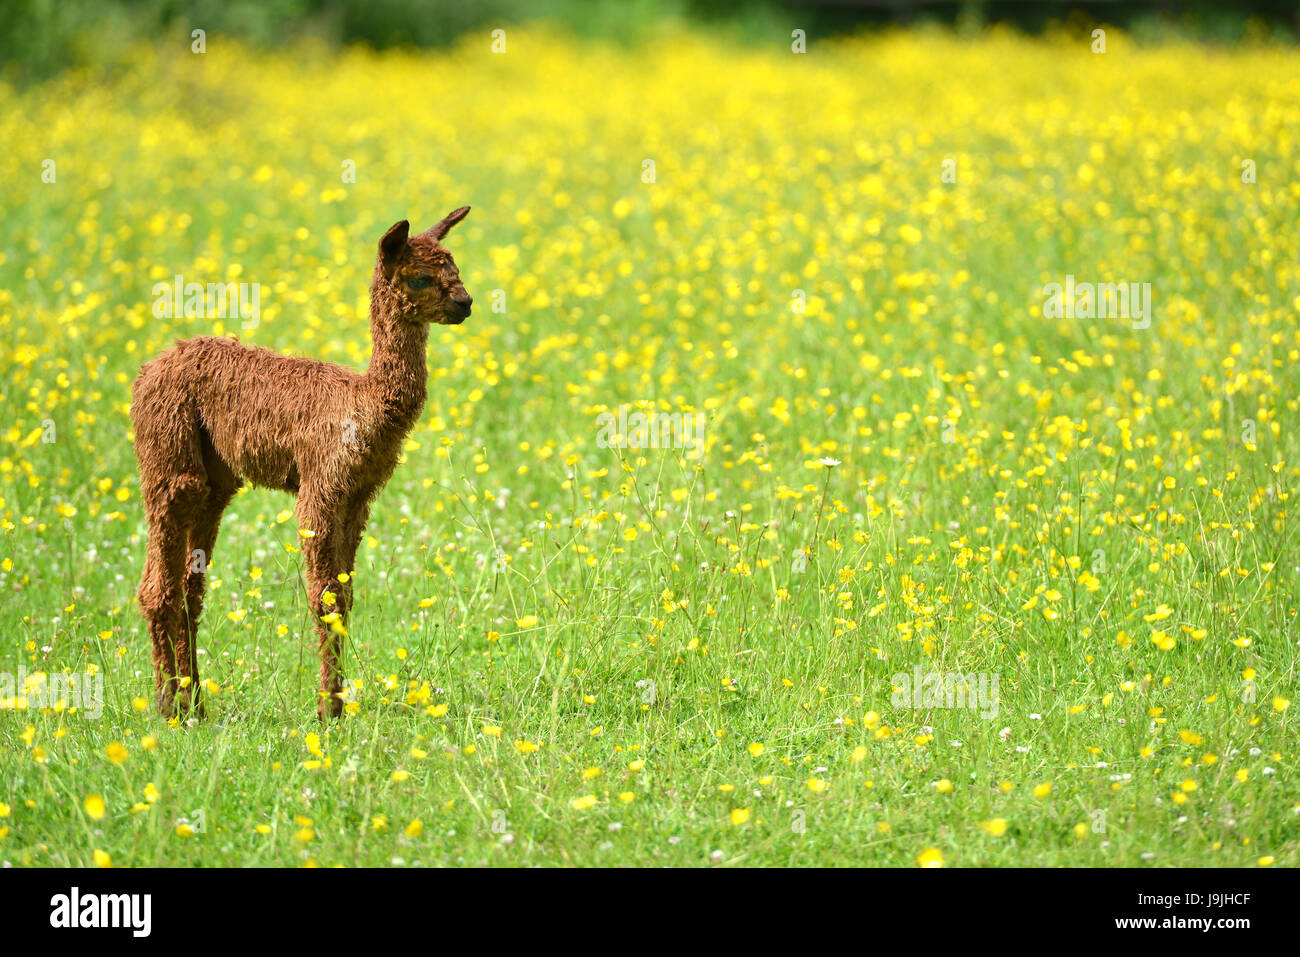 Baby alpaca in a meadow of buttercups - Stock Image